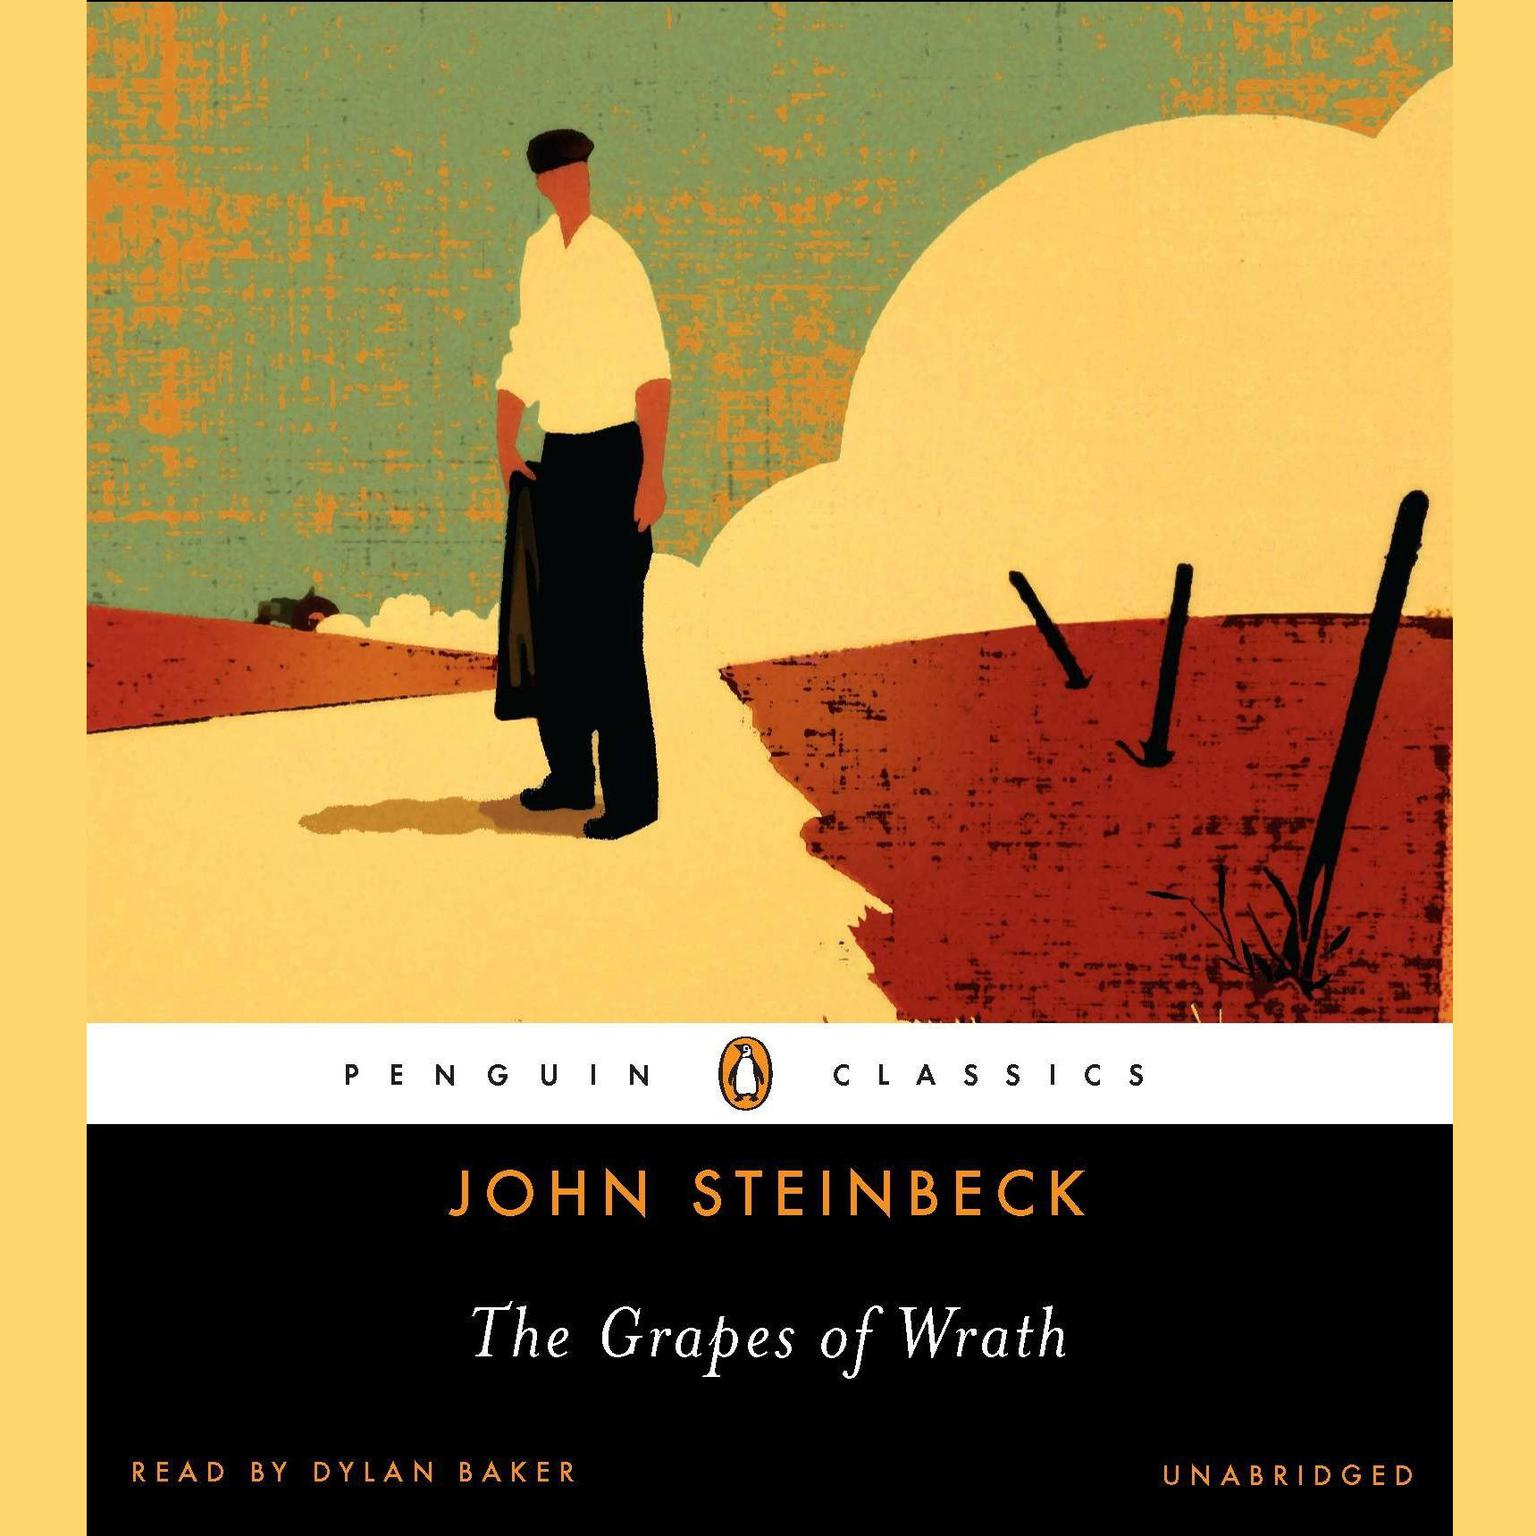 The grapes of wrath essay themes